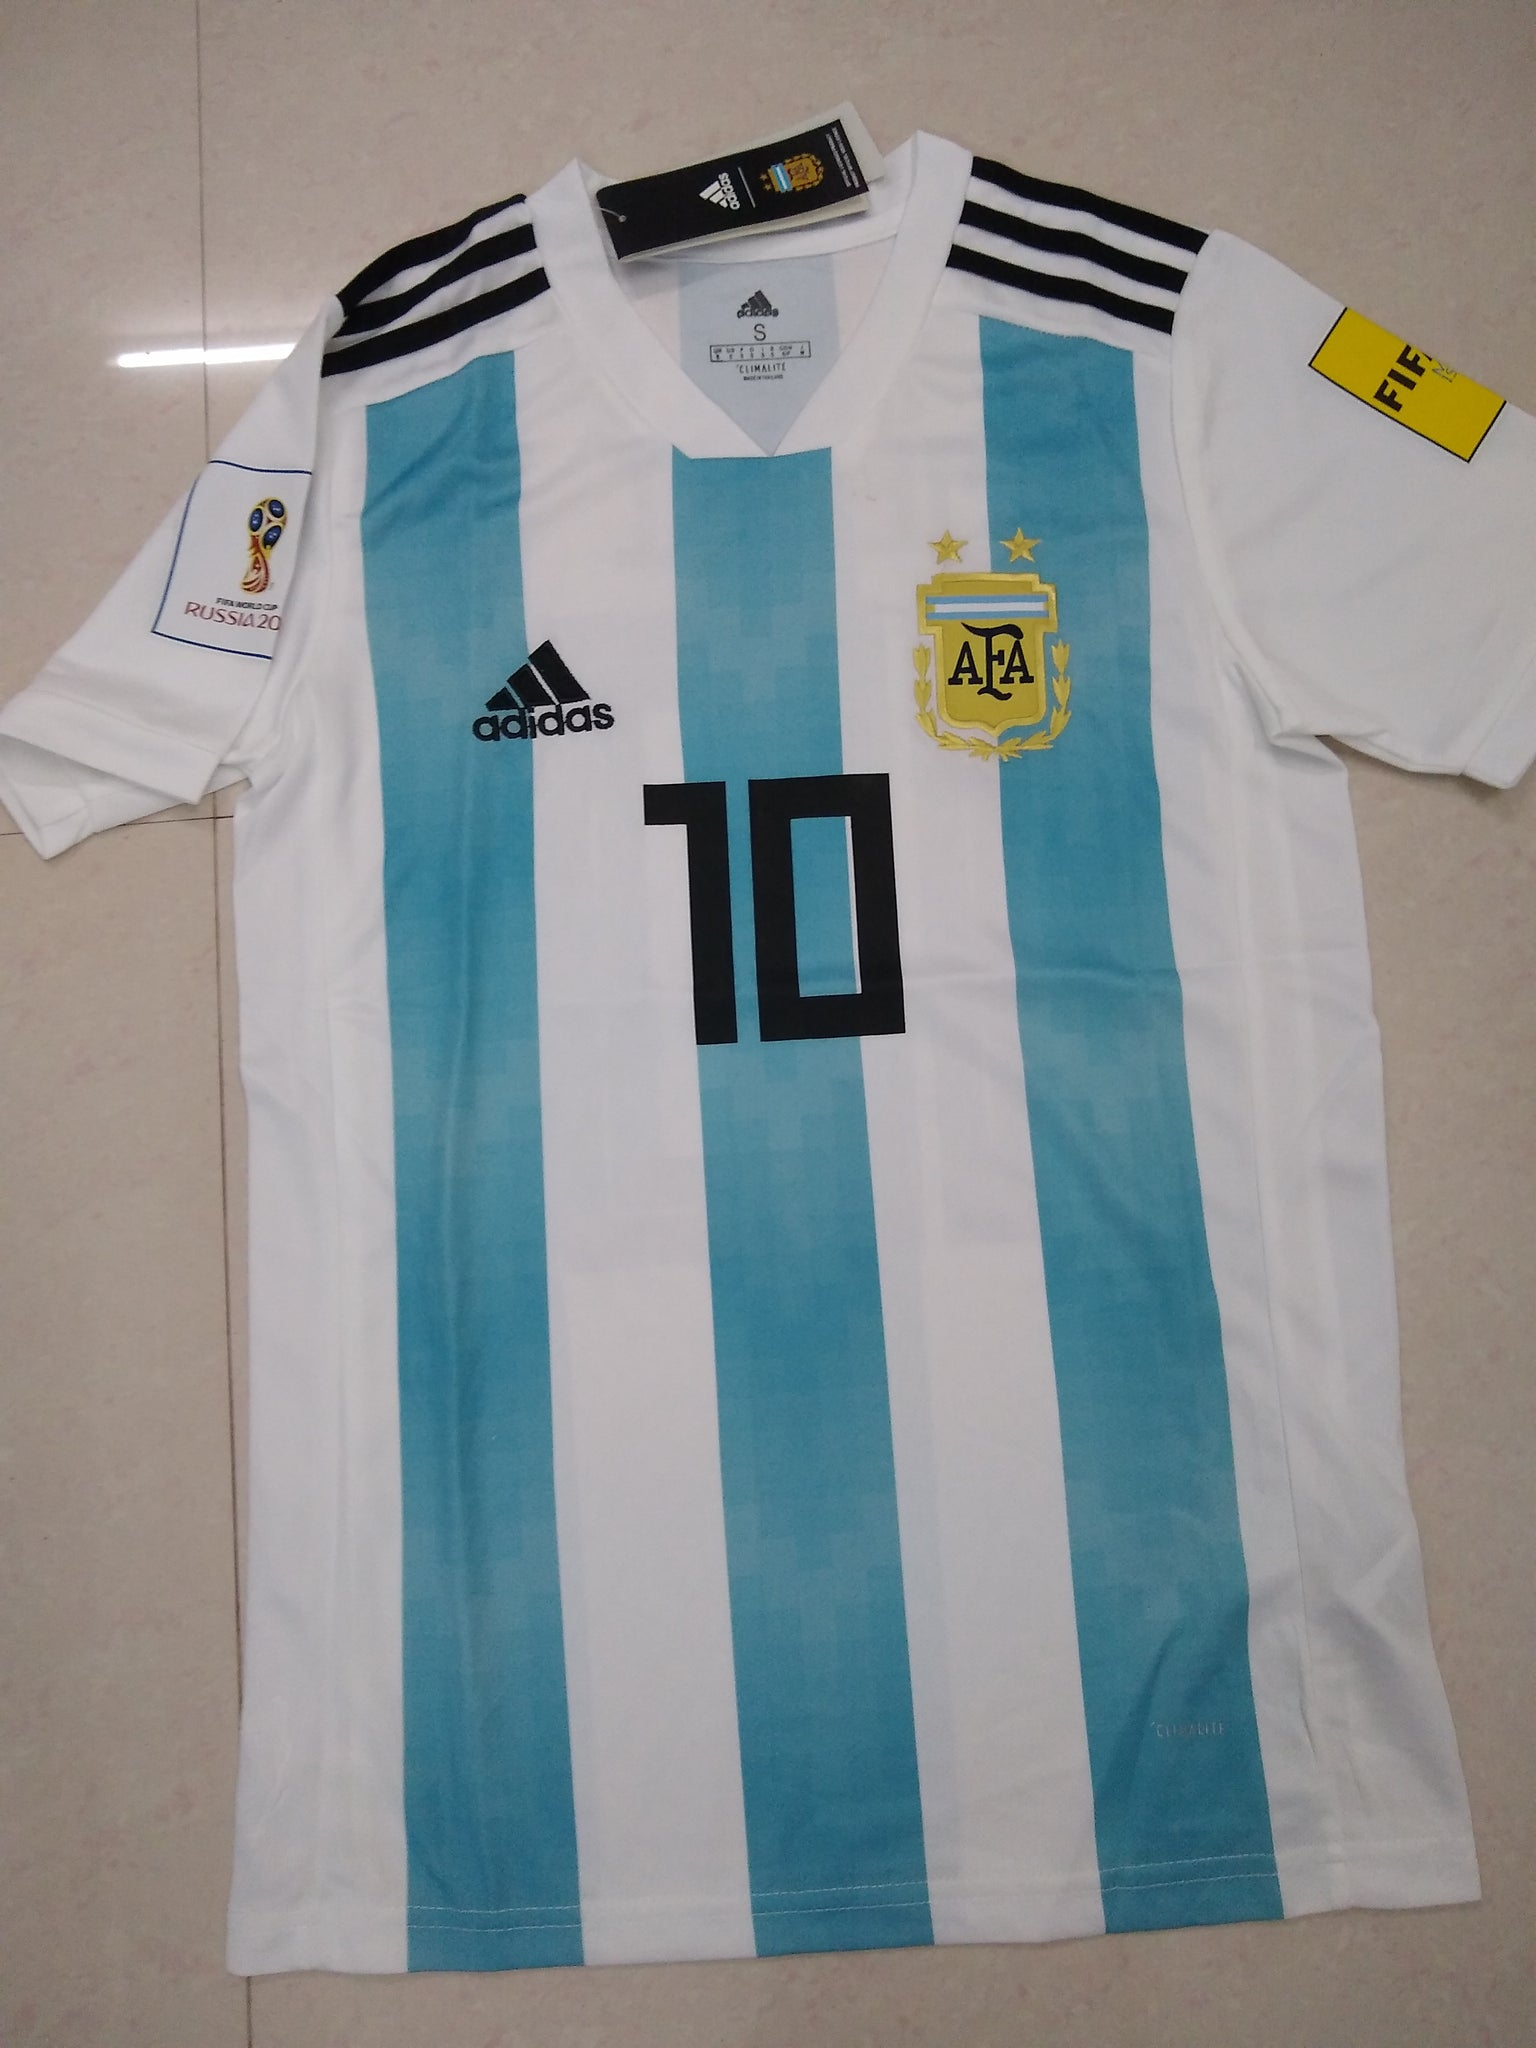 6eee9bfec46 Argentina Football Jersey FIFA World Cup 2018 replica kit online ...